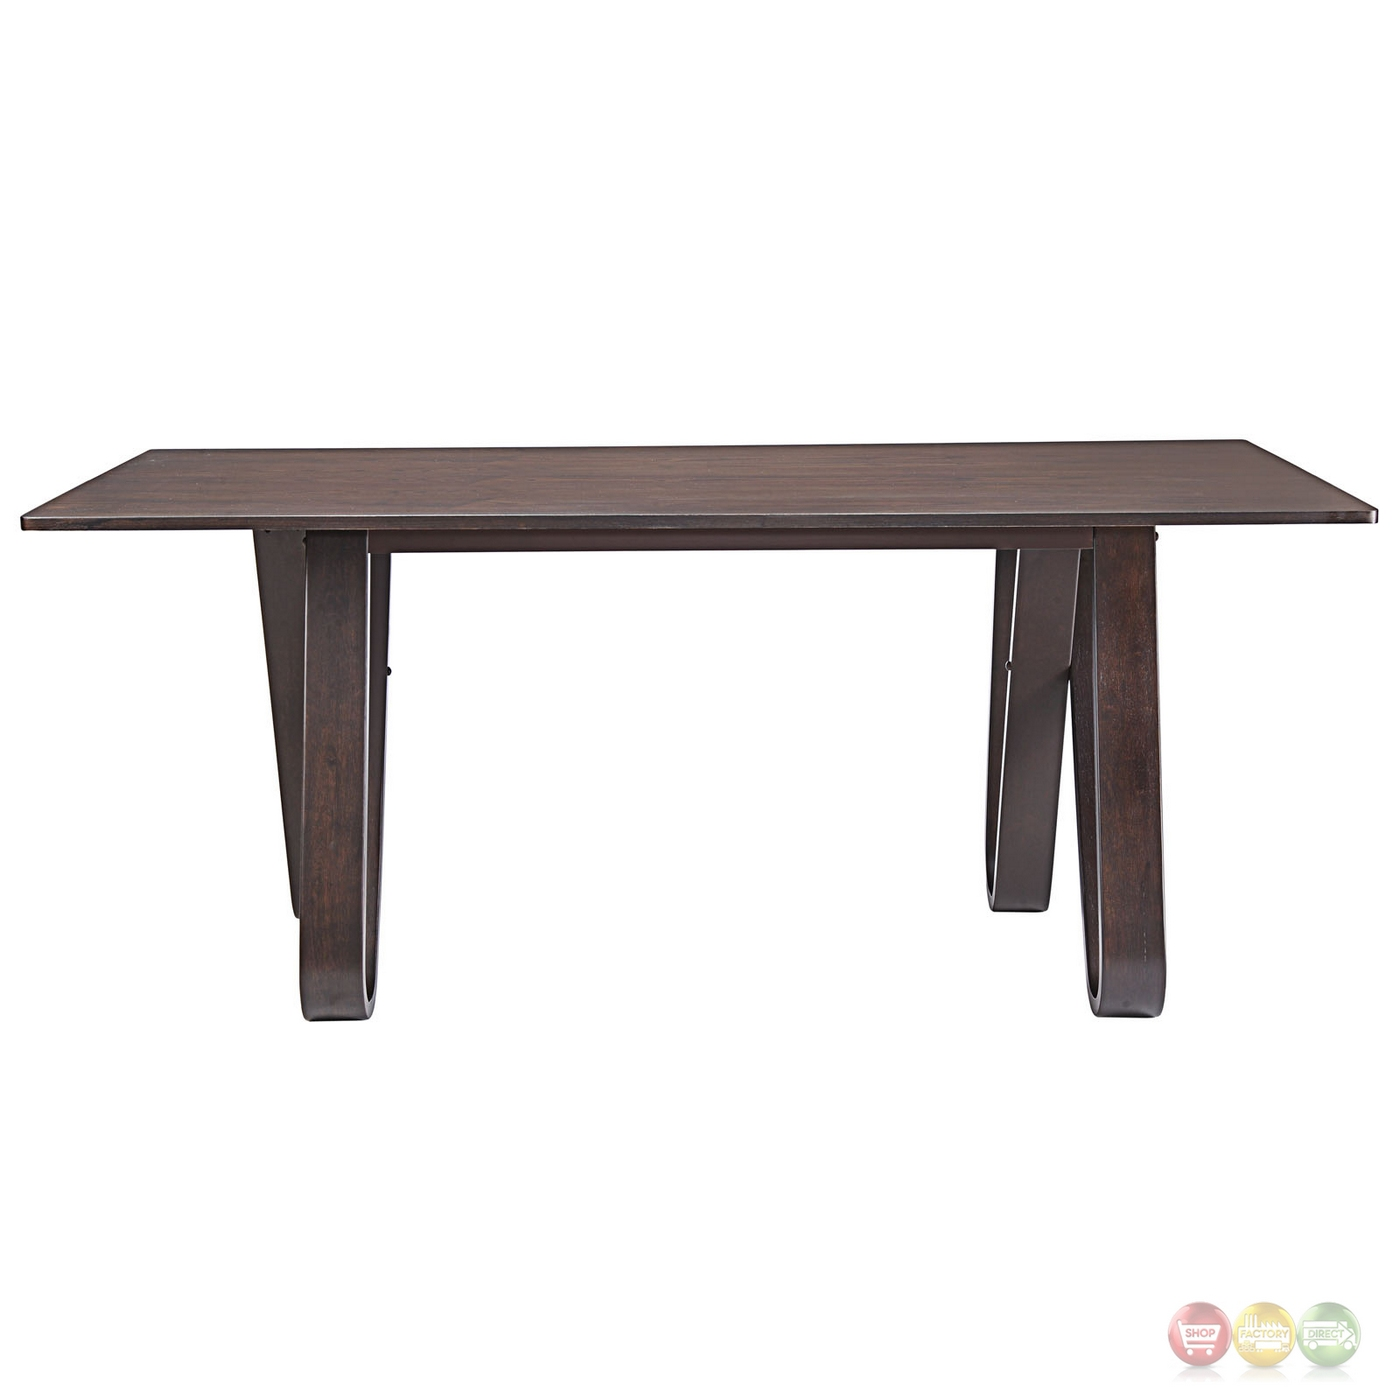 Cision modern rustic wood grain finished dining table w for Stylish wooden dining table